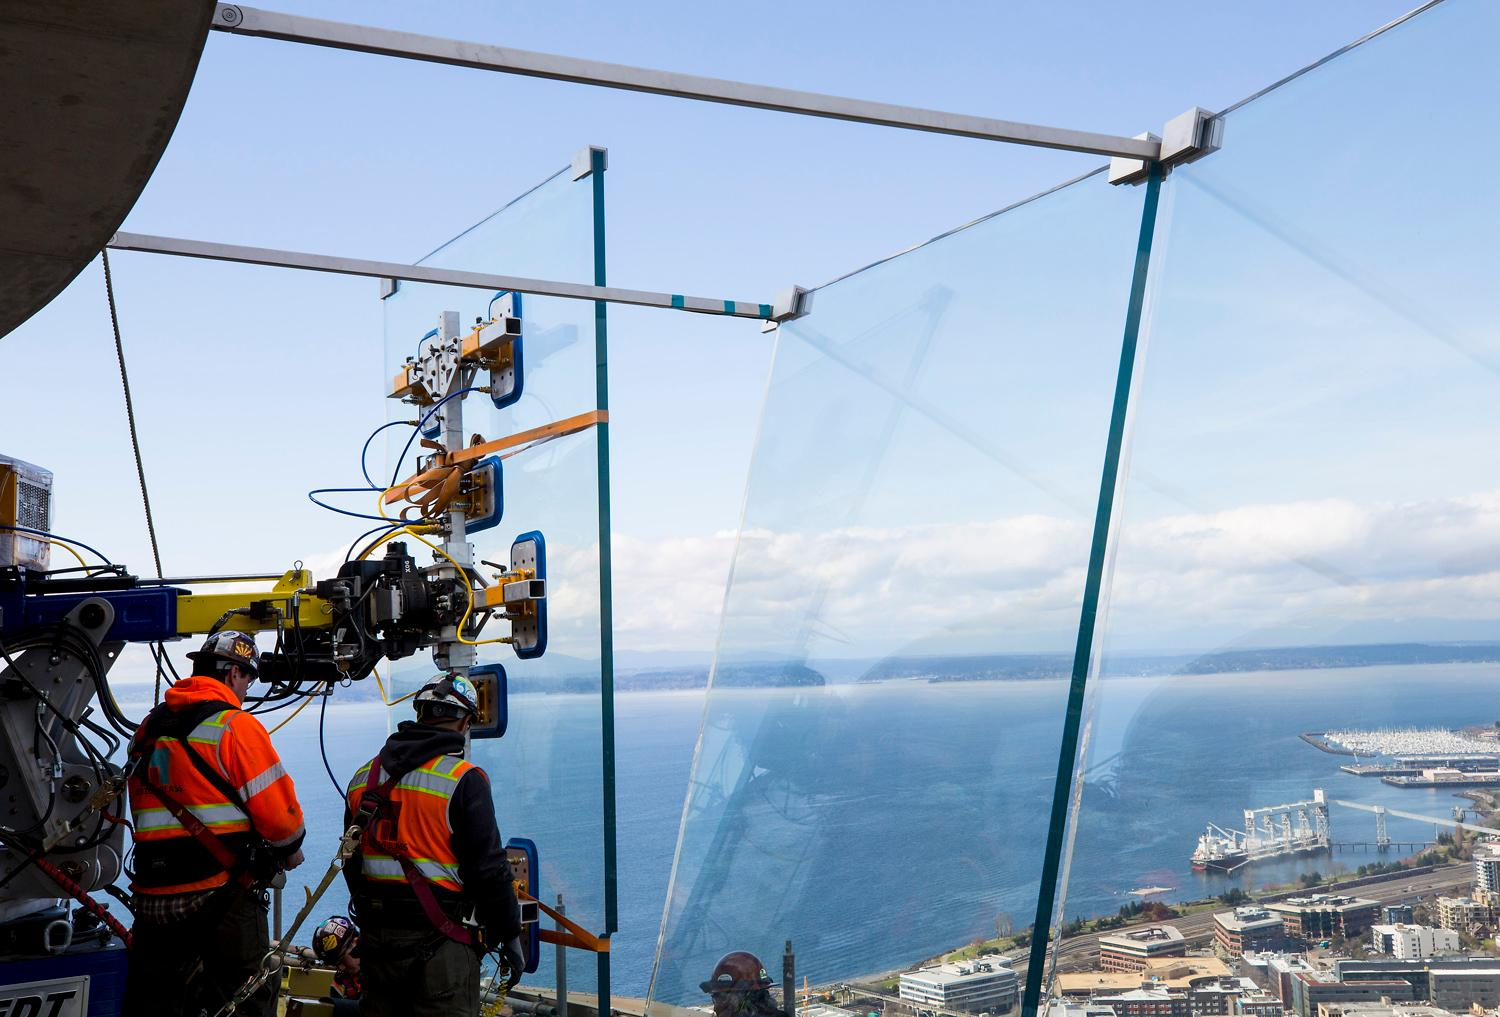 Herzog Glass construction workers use a specially designed machine to suction the 2,300 pound glass panels and place them on the exterior wall of the Observation Deck of the Space Needle, Tuesday, March 20, 2018. A total of 48 glass panels will be installed and are part of the Space Needle's Century Project, a multi-year venture focused on preservation and renovation of the 55-year-old icon. (Sy Bean / Seattle Refined)